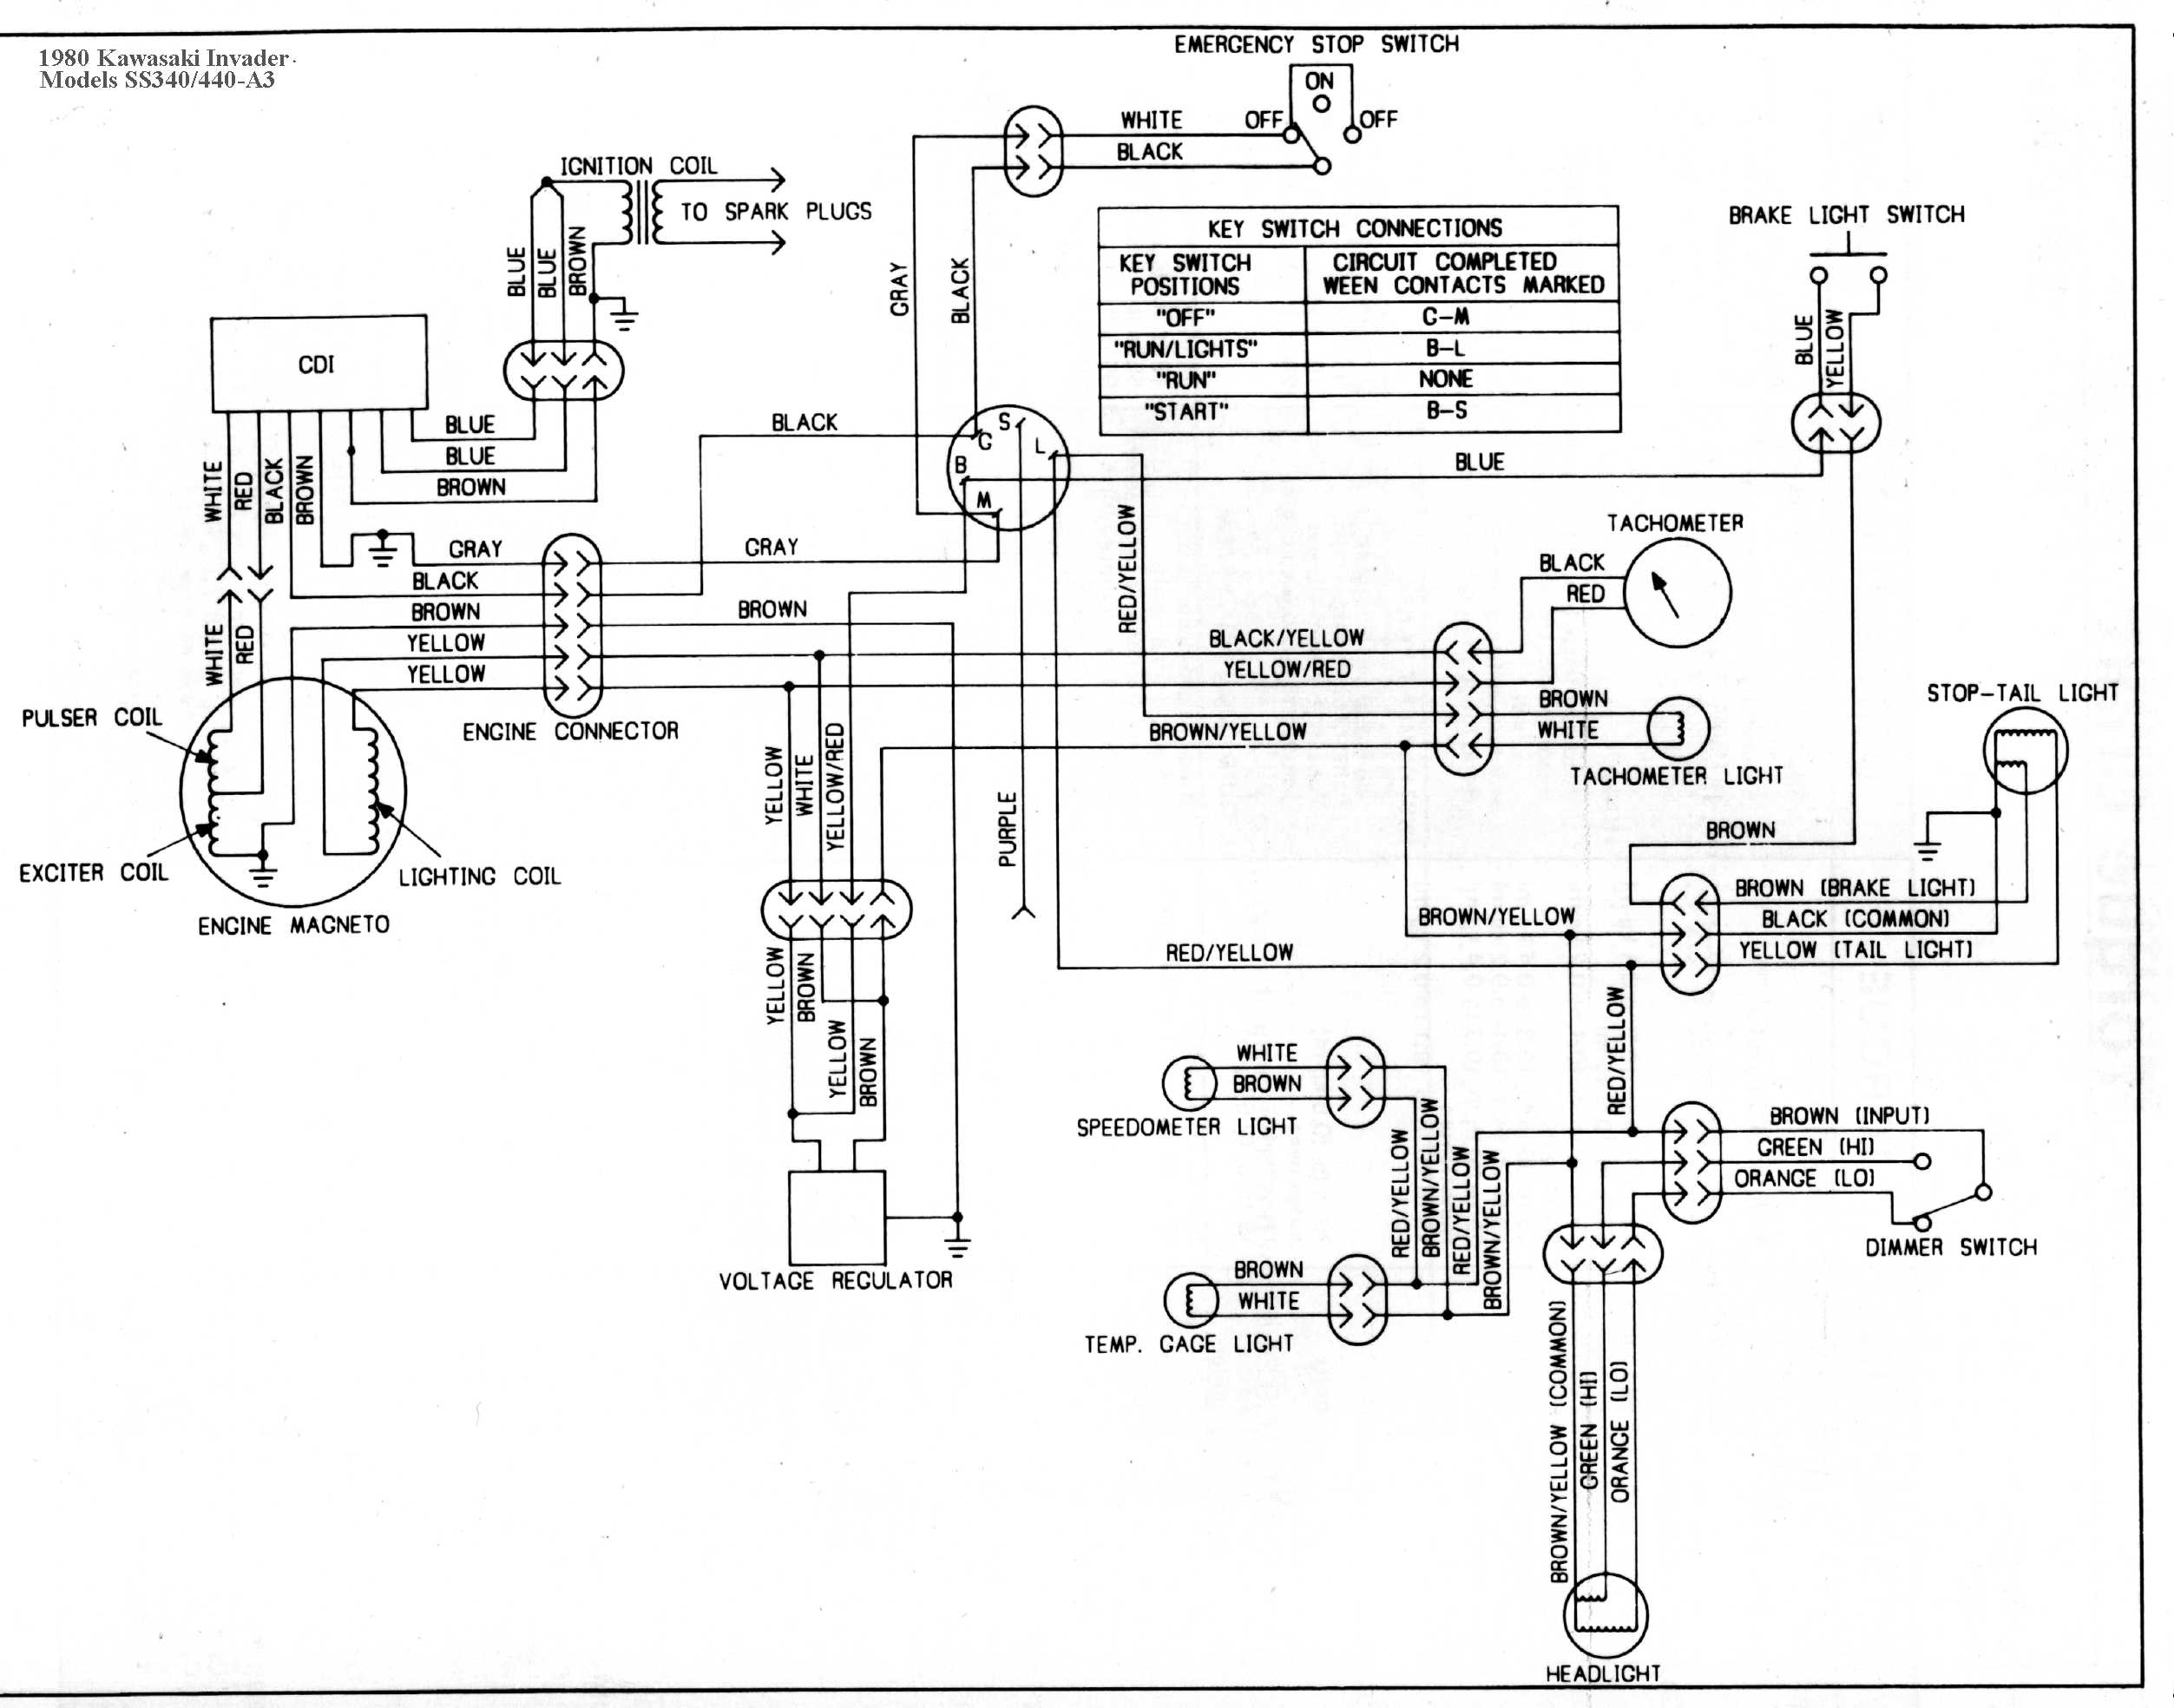 ss340a3 kawasaki invader snowmobile wiring diagrams 1981 kawasaki 440 ltd wiring diagram at bayanpartner.co